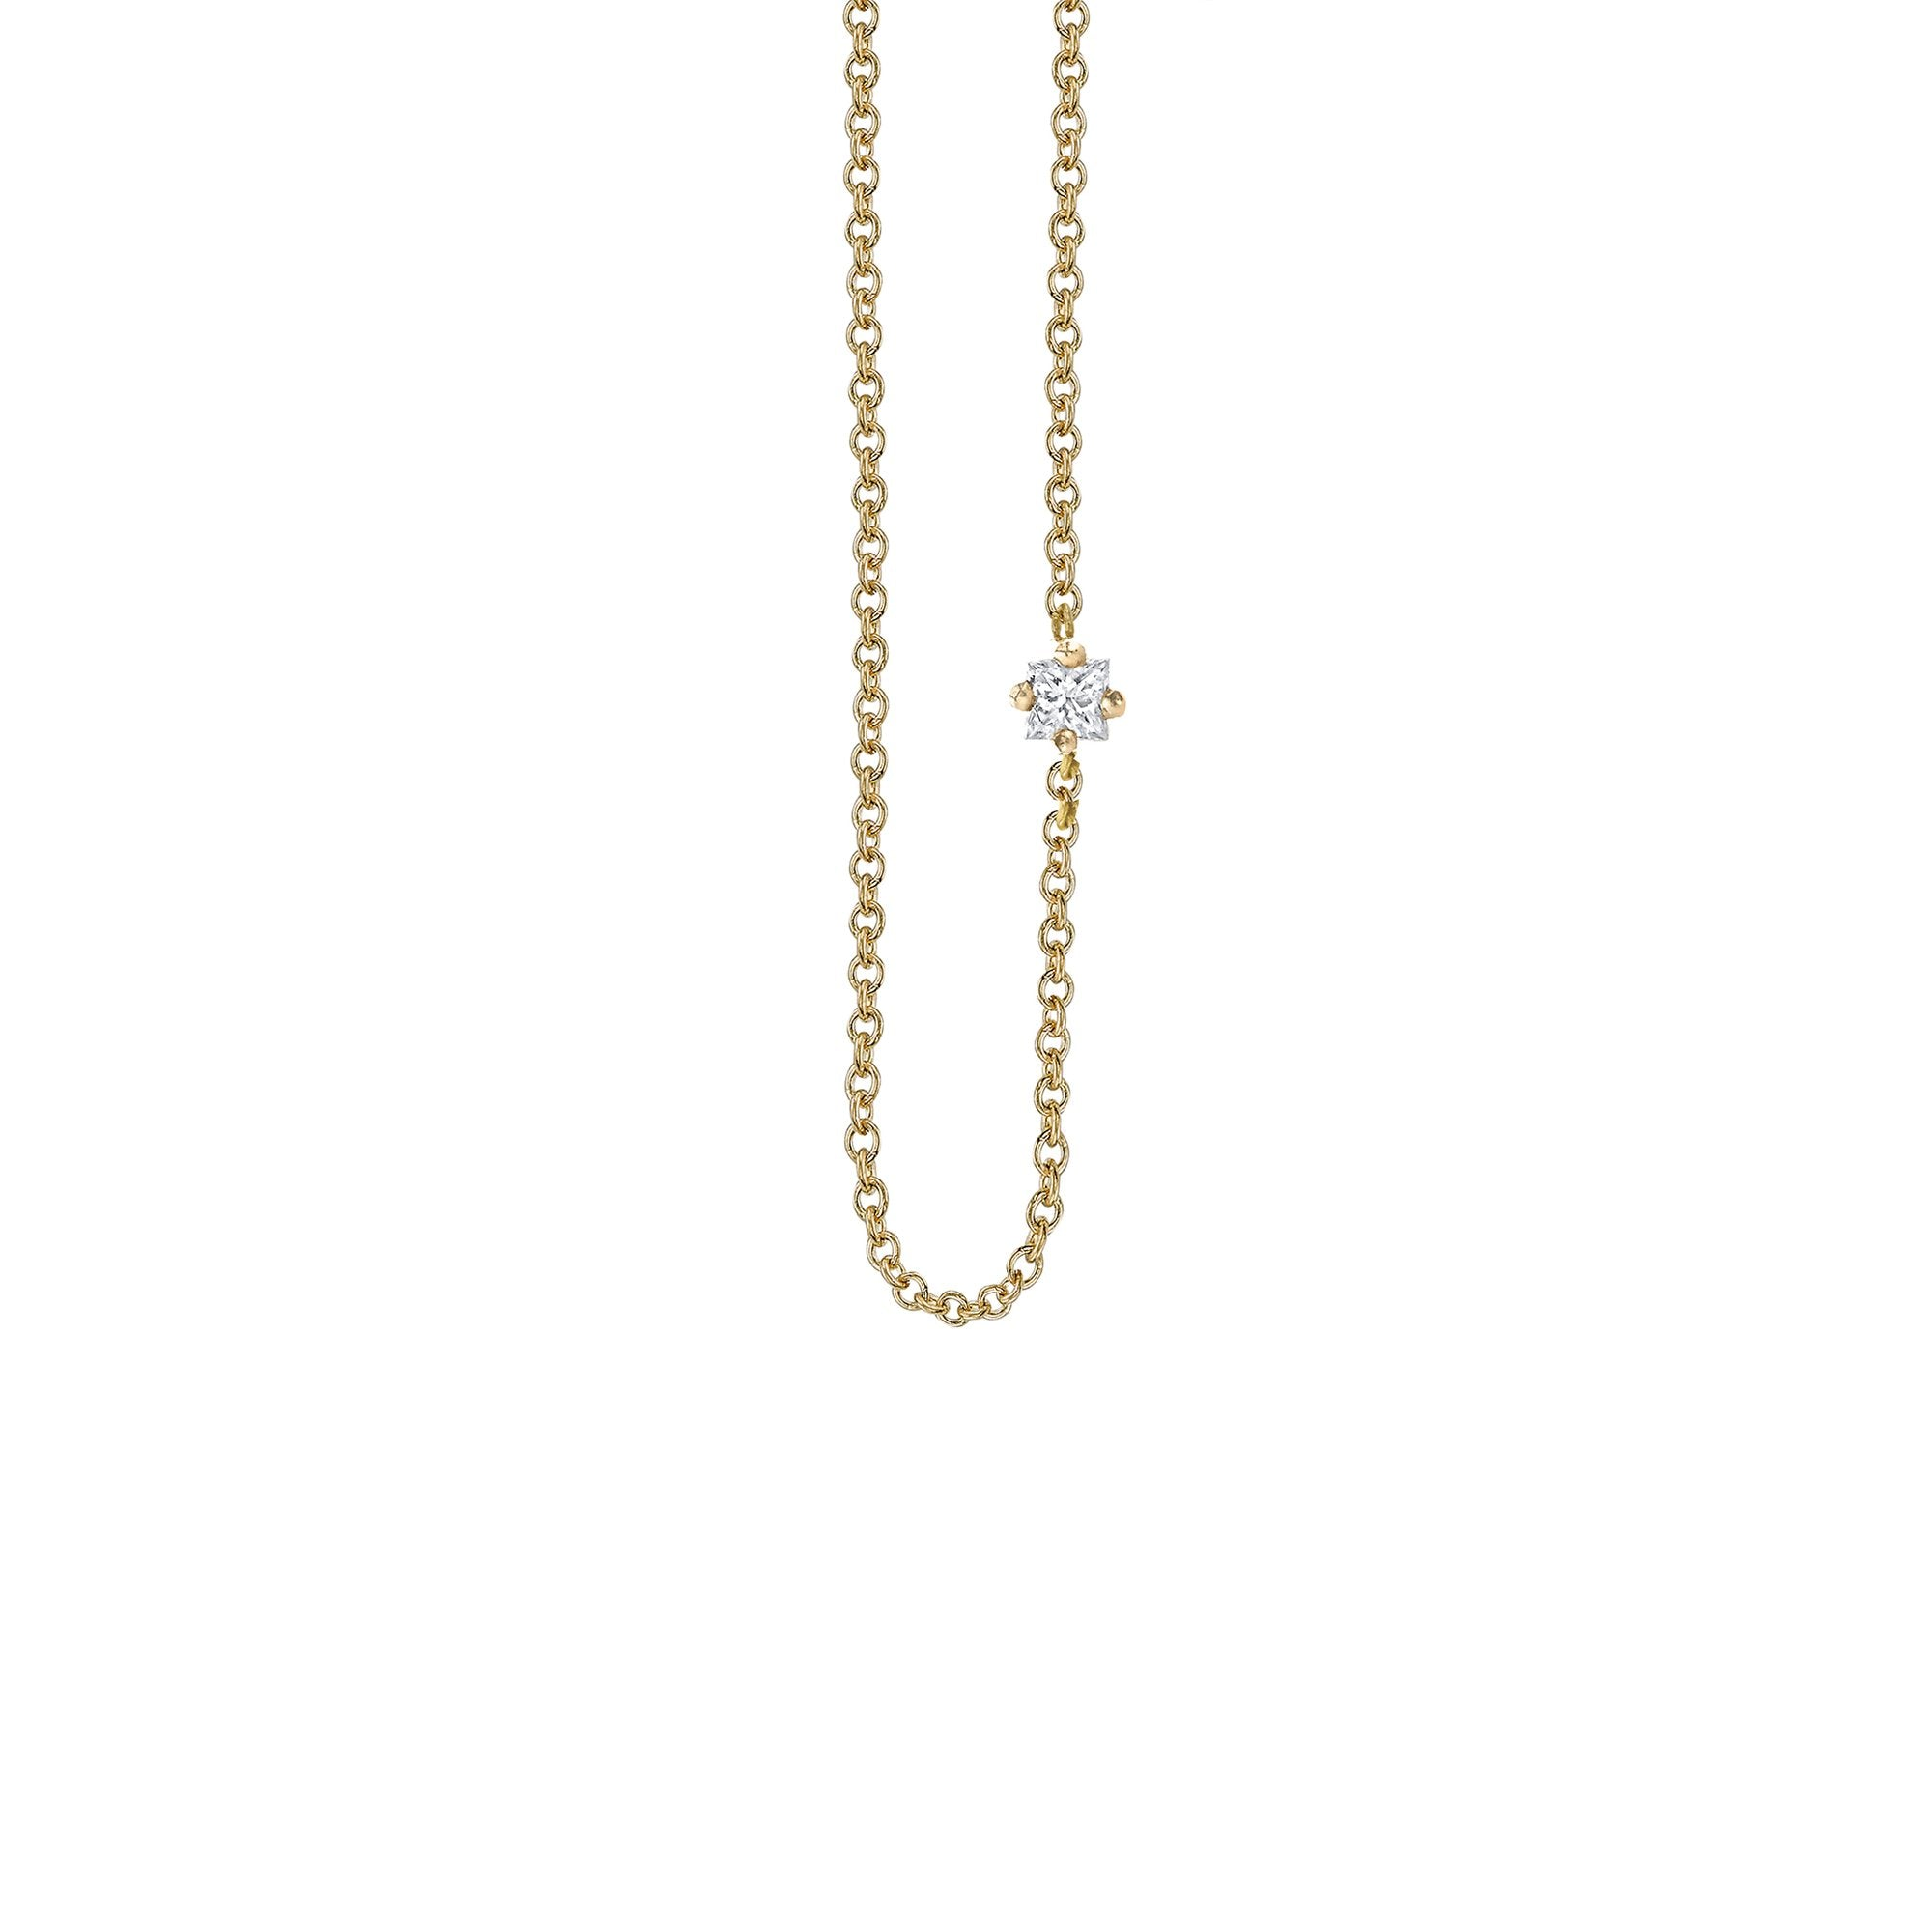 Lizzie Mandler Princess Floating Necklace - Diamond & Gold - Necklaces - Broken English Jewelry